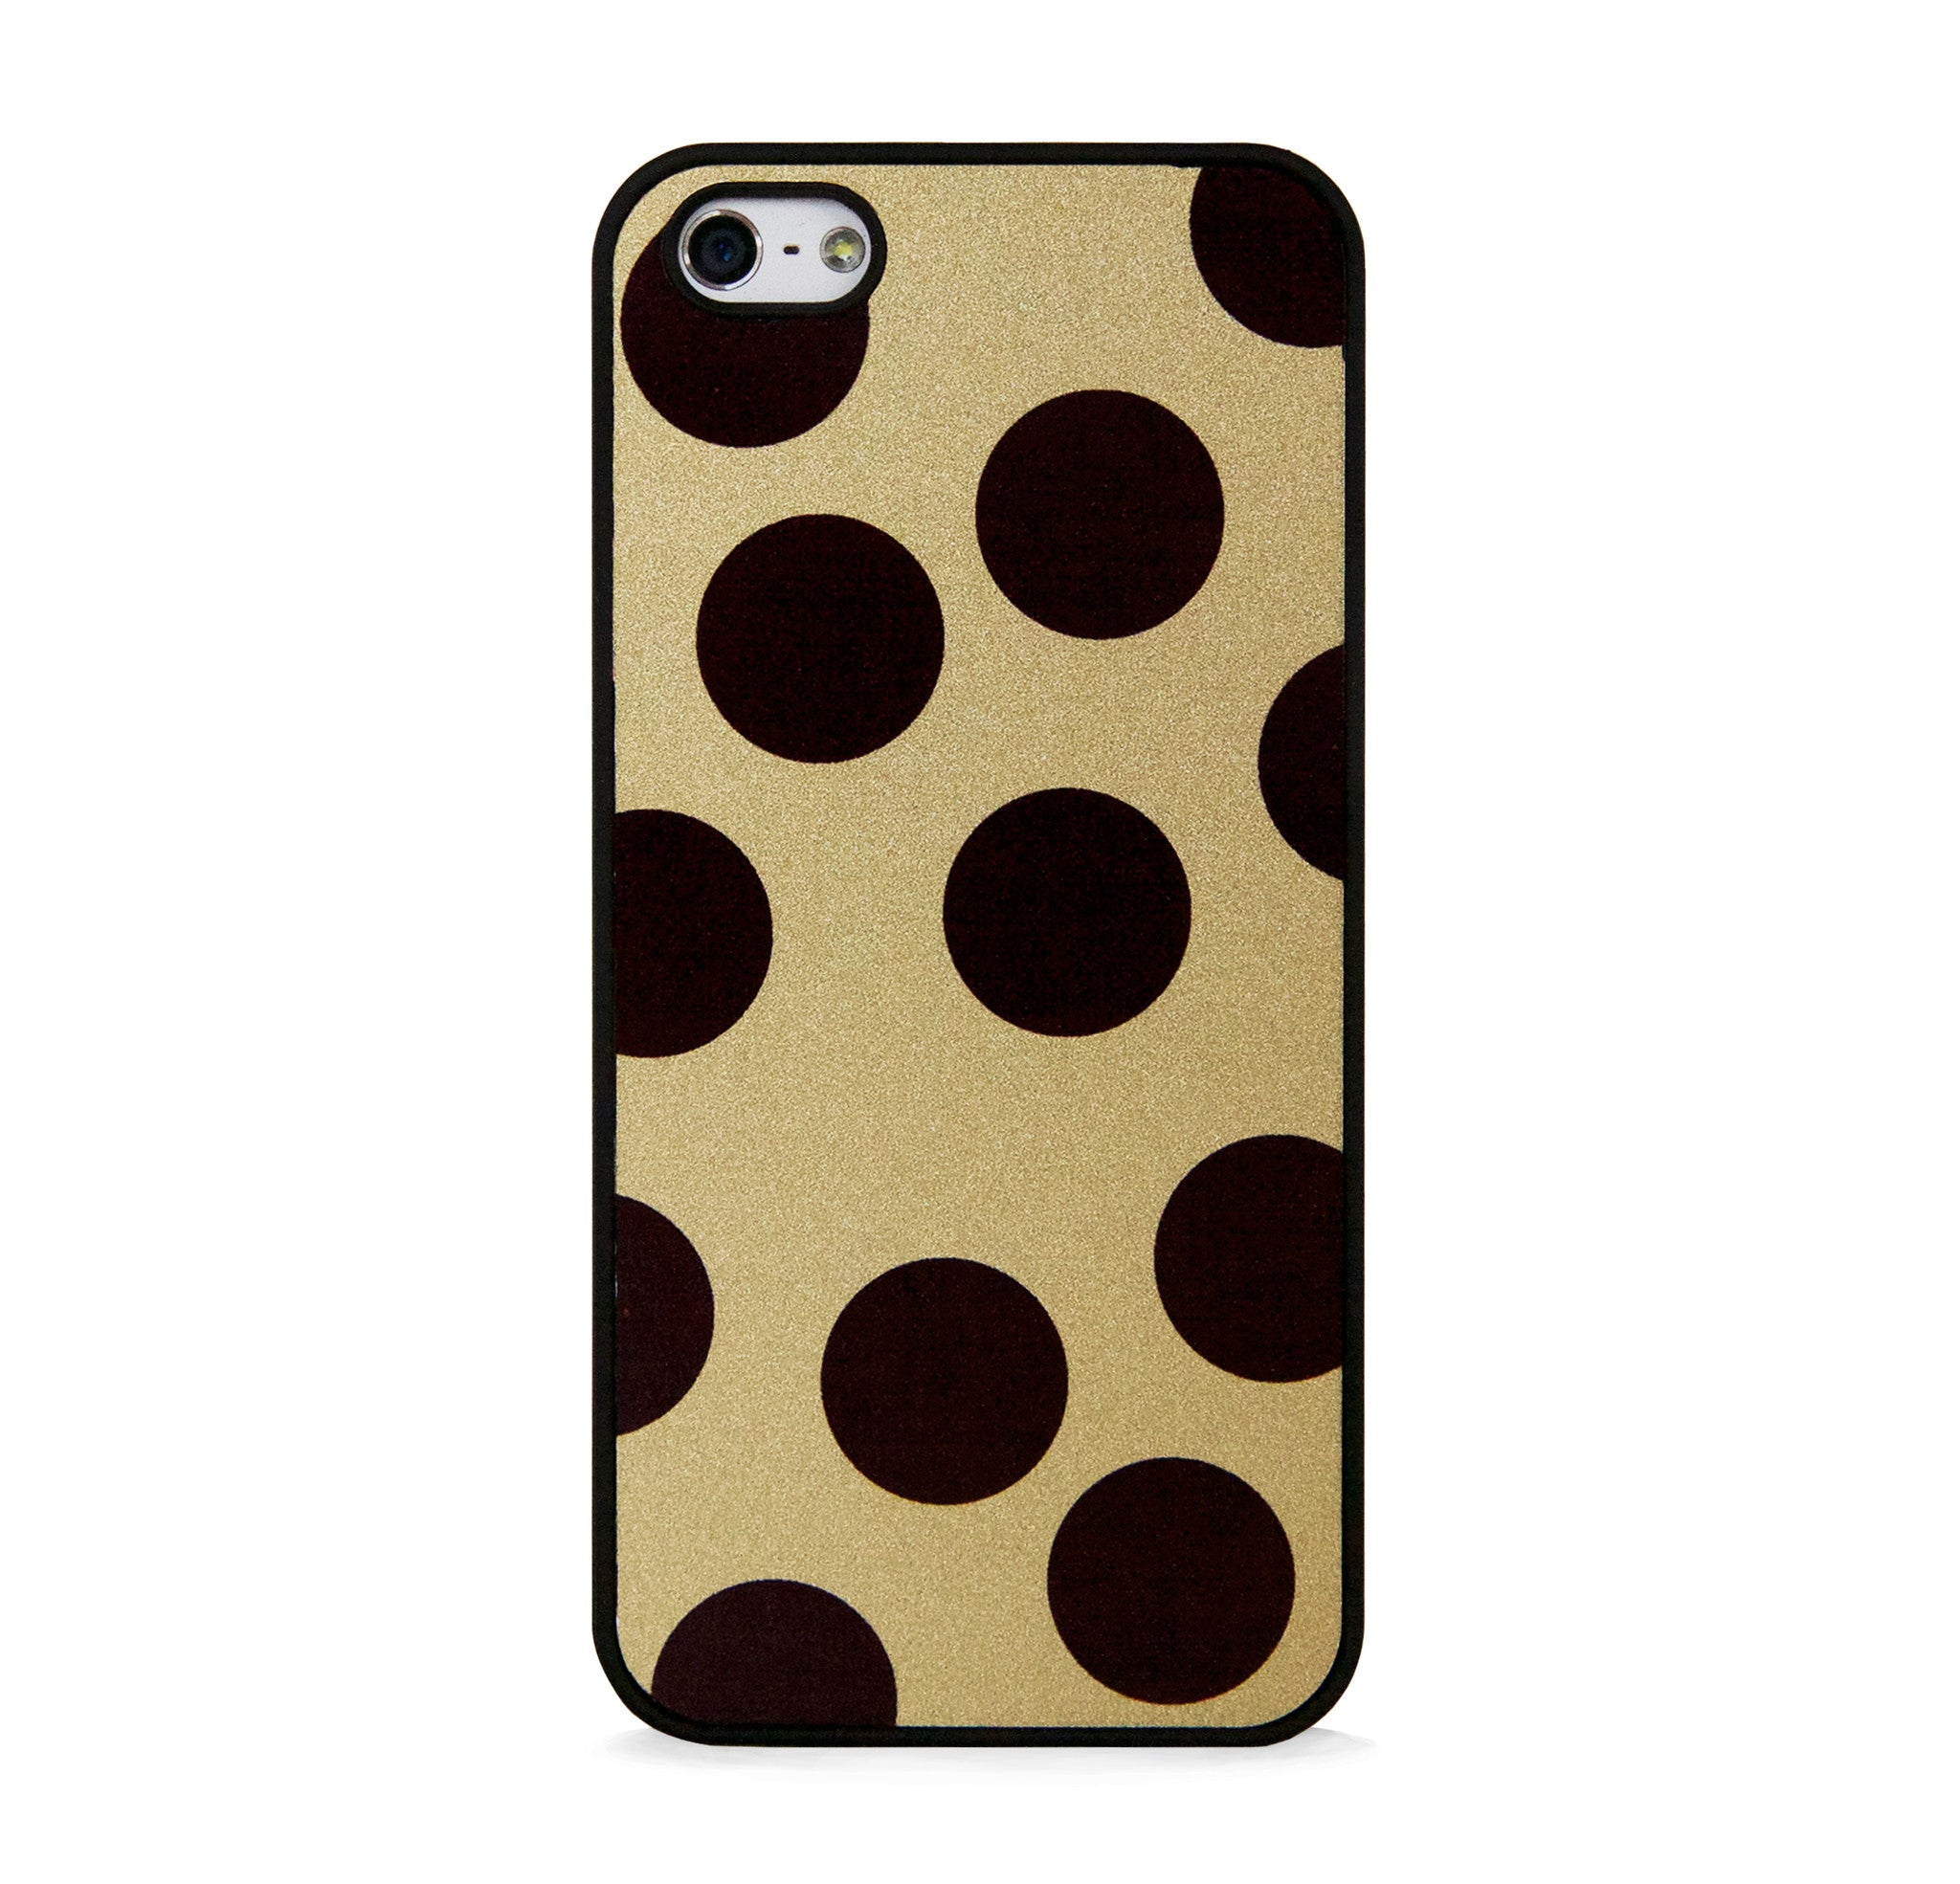 BIG POLKA DOTS ON GOLD FOR IPHONE 5/5S